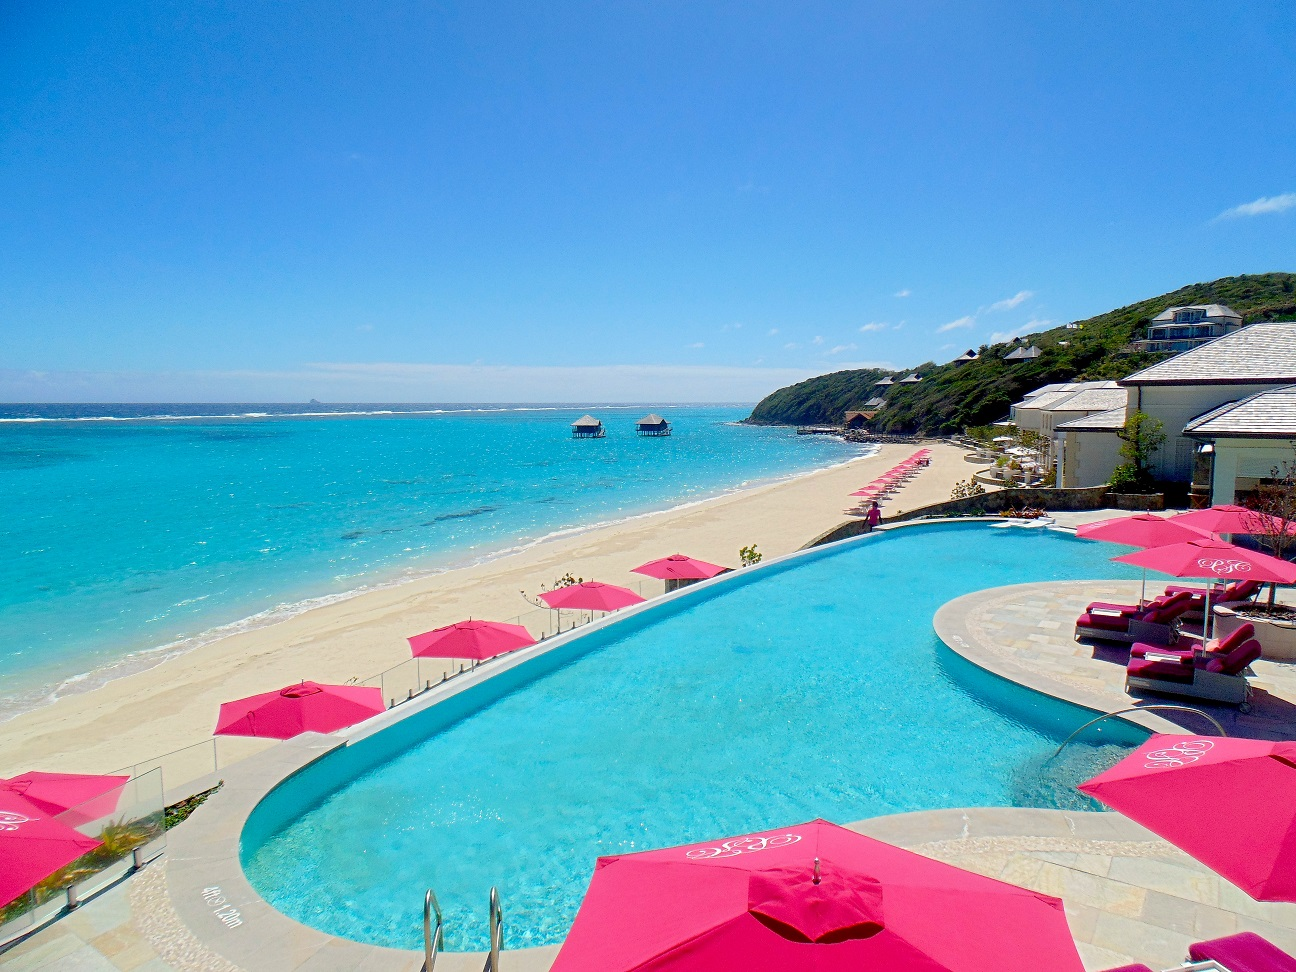 Private Jet Holiday to Canouan Island